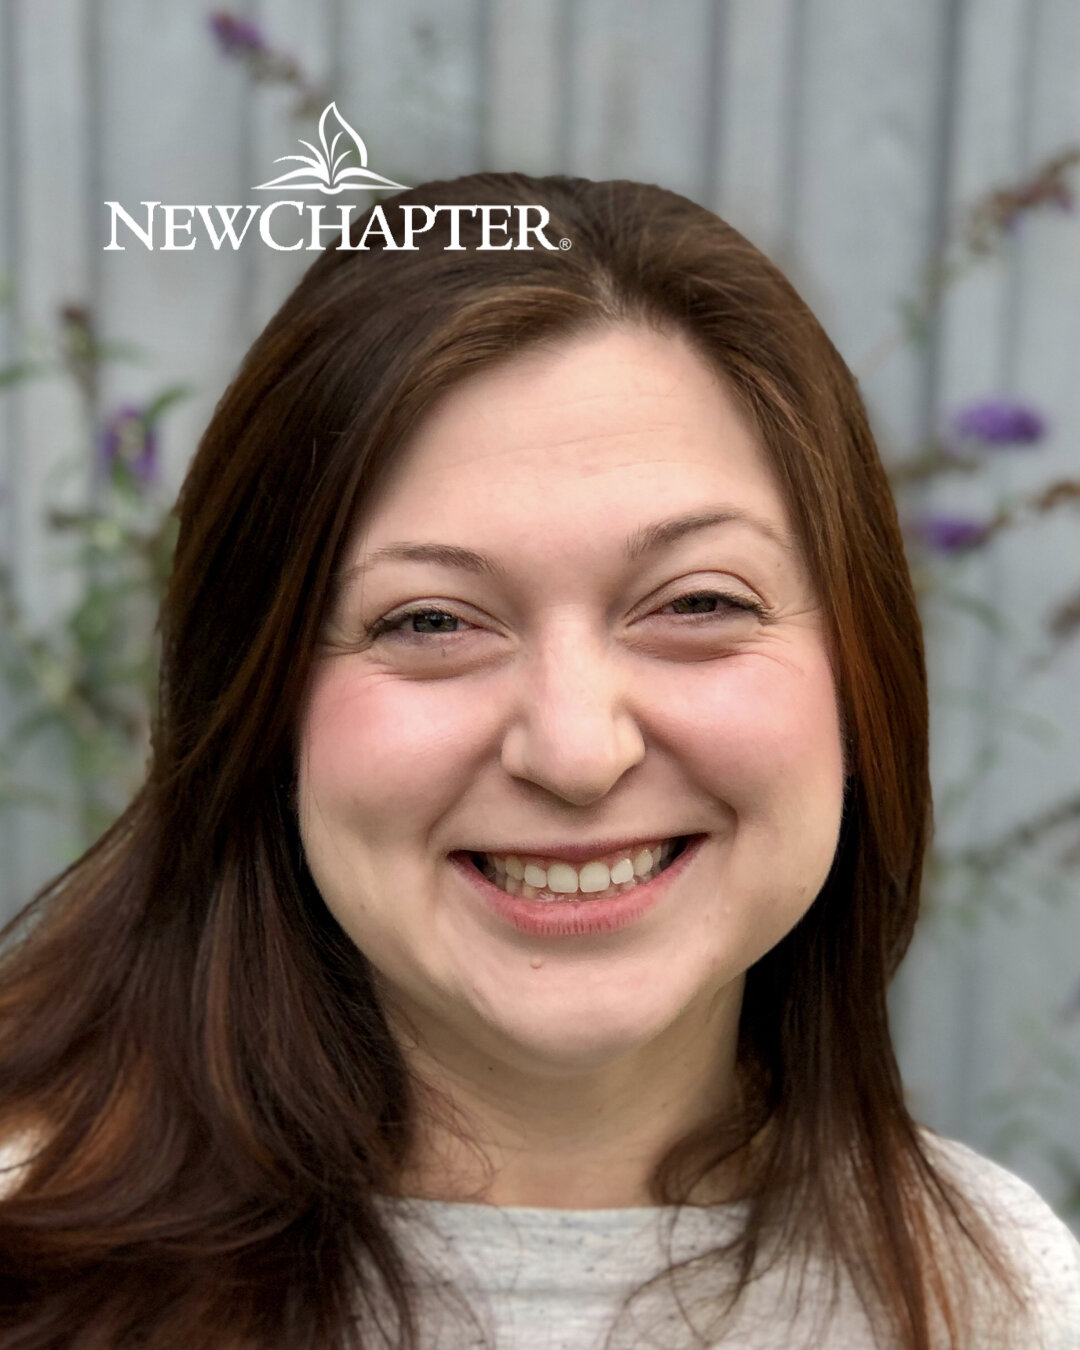 Charlotte Traas,, Director of Sales Education and Training, New Chapter  Inc. - Charlotte Traas is the Director of Sales Education and Training at New Chapter, Inc, an environmental activist and mom. Charlotte began her career teaching at a medical college in Saint Louis, Missouri. Recognizing that Western medicine may be enhanced by natural traditions established in Eastern medicine, Charlotte studied herbs and mushrooms in Japan and China. A consummate student, Charlotte has been studying natural alternatives for health for the past 15 years under some of America's most notable herbalists and naturopaths. A passionate advocate and spokesperson for natural healing techniques and remedies, Charlotte educates on the repercussions of GMO's and gives seminars on Women's Health empowerment.